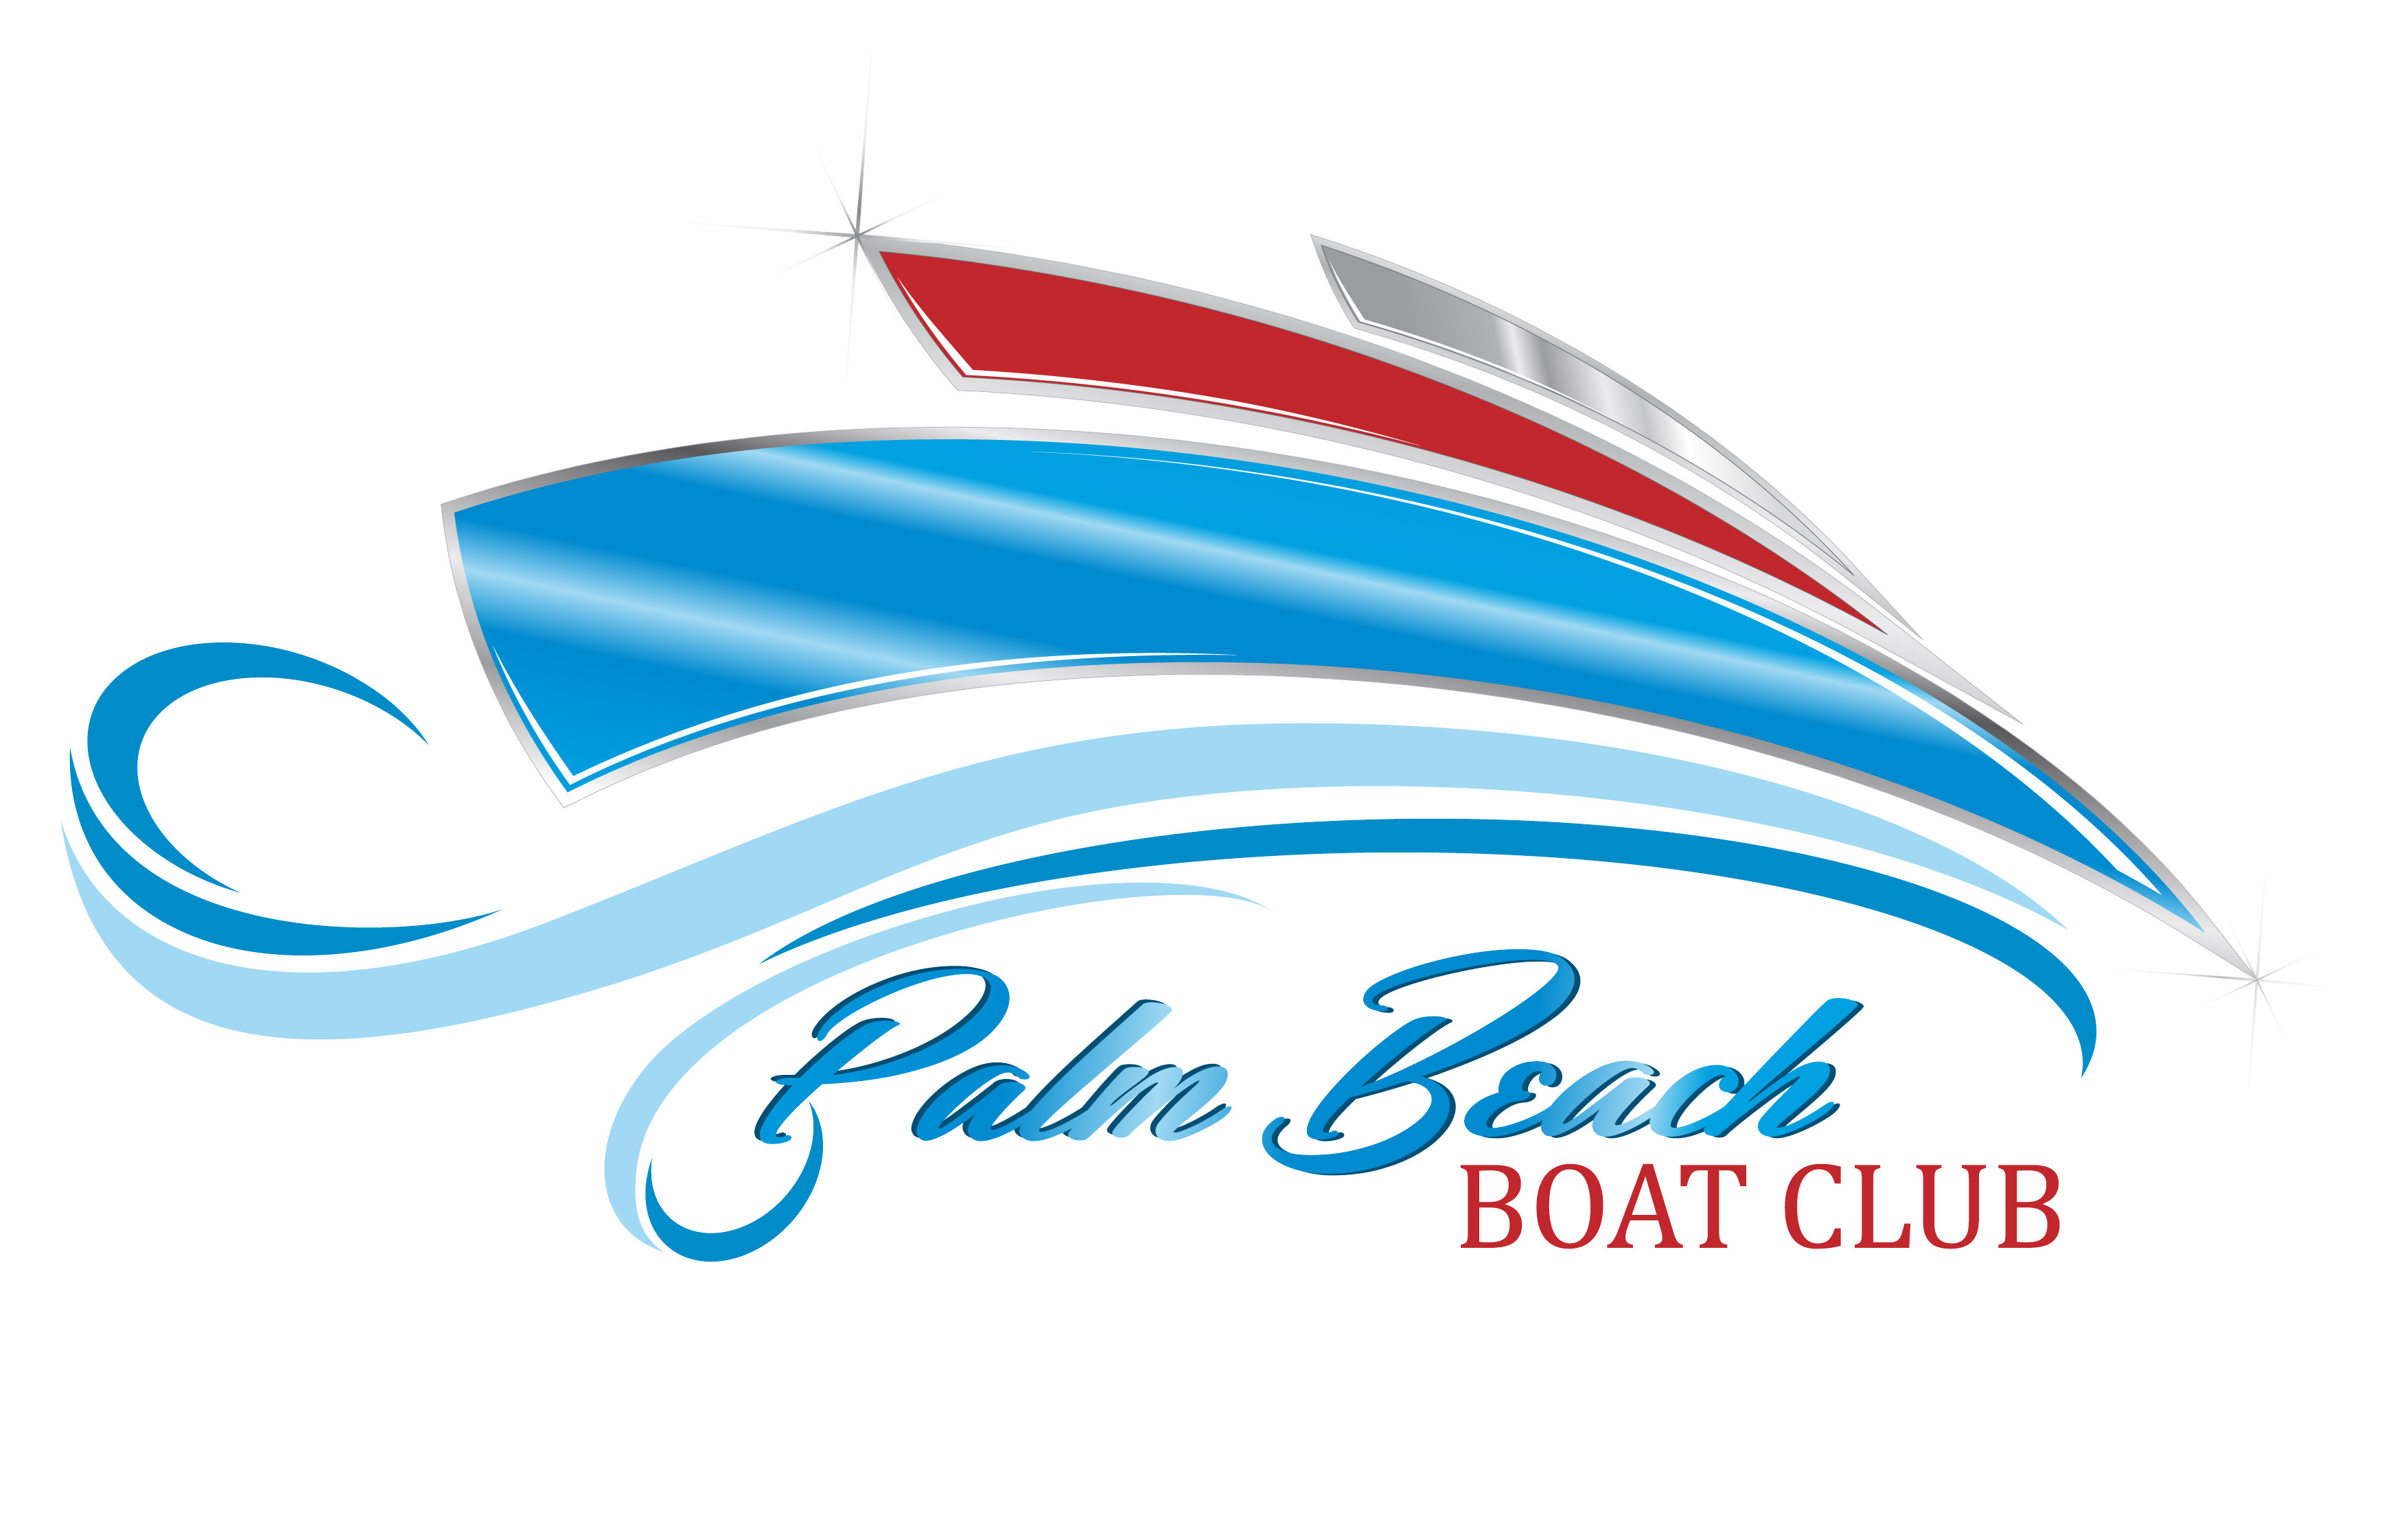 The Palm Beach Boat Club